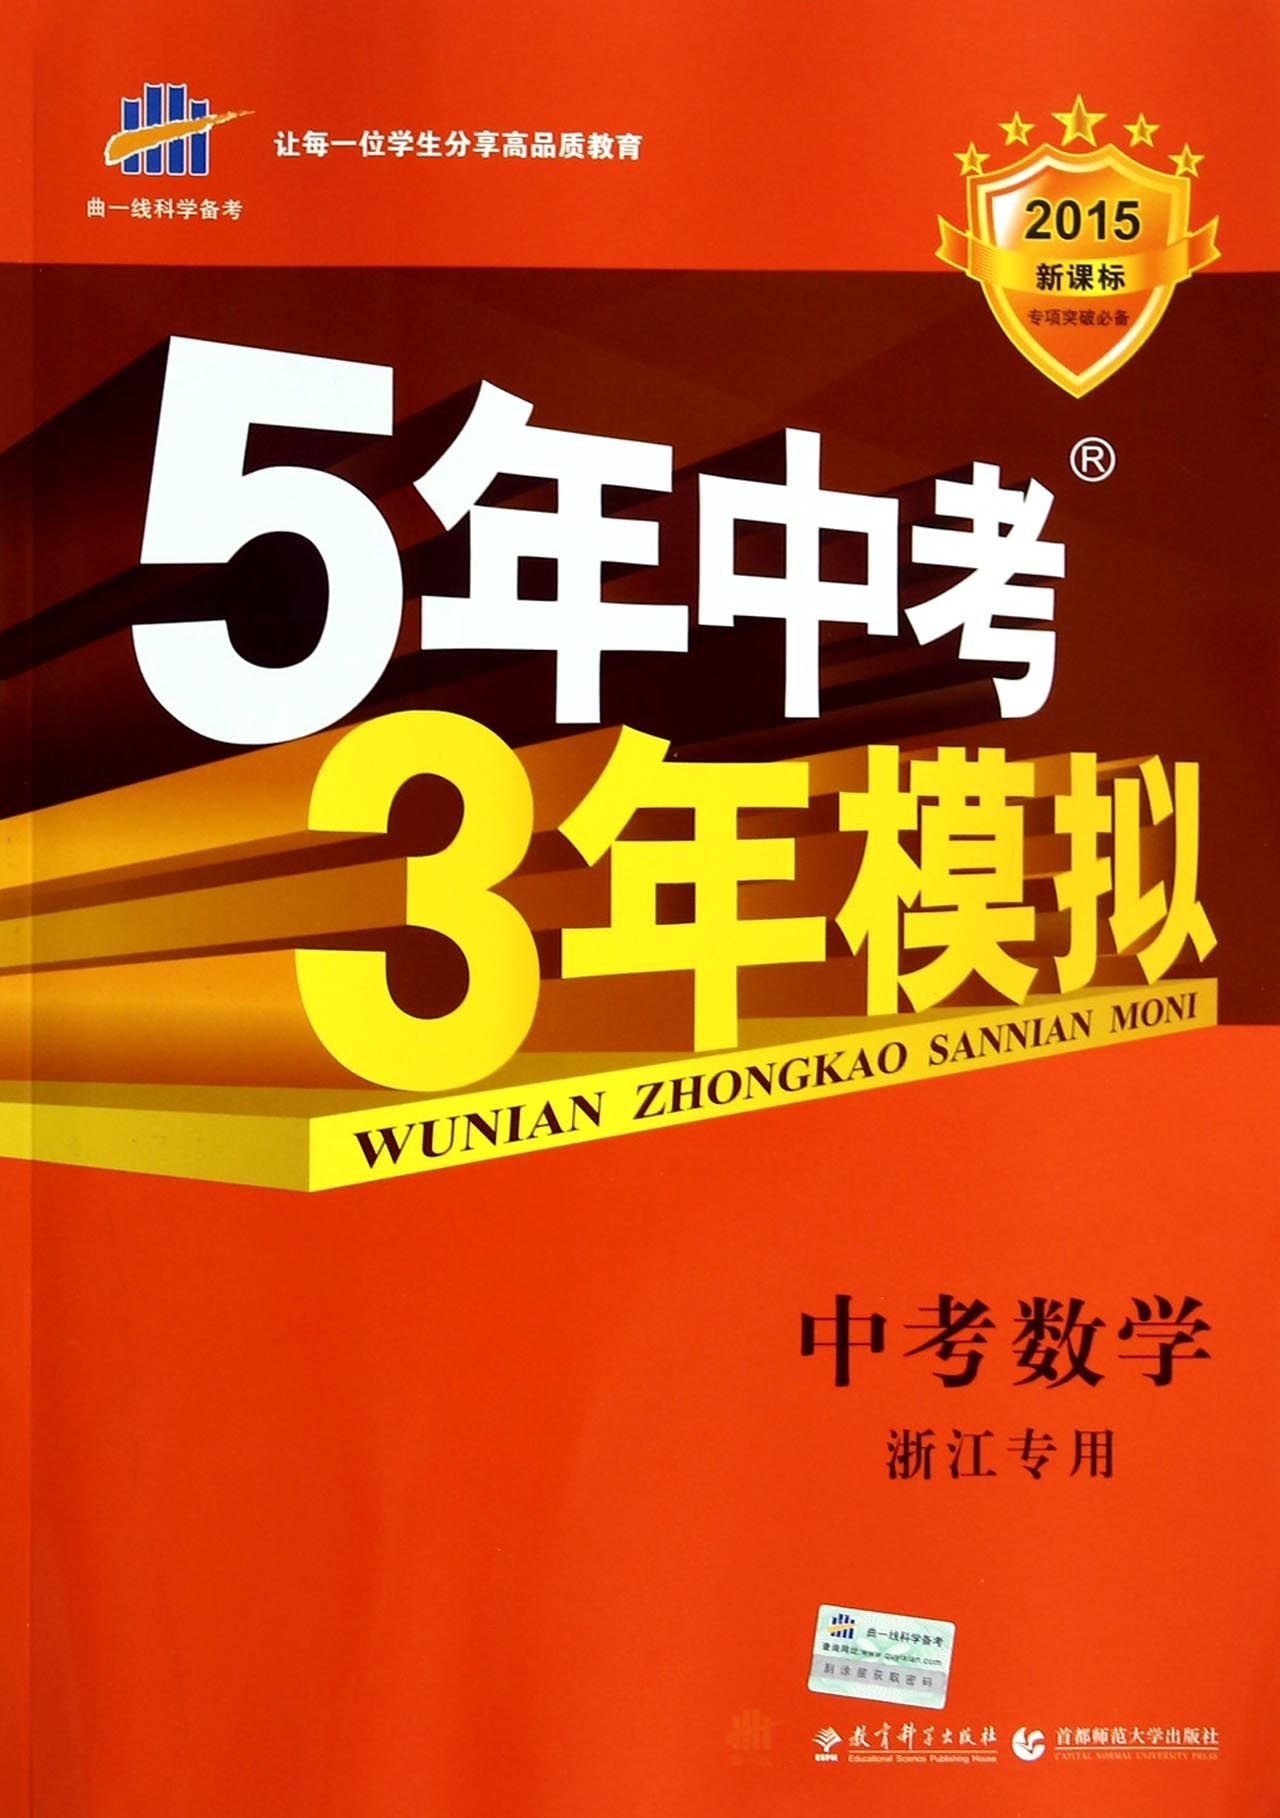 Download Curved line scientific Remarks 3 years 5 years exam simulation : in Mathematics ( Zhejiang special ) ( 2014 new curriculum )(Chinese Edition) ebook